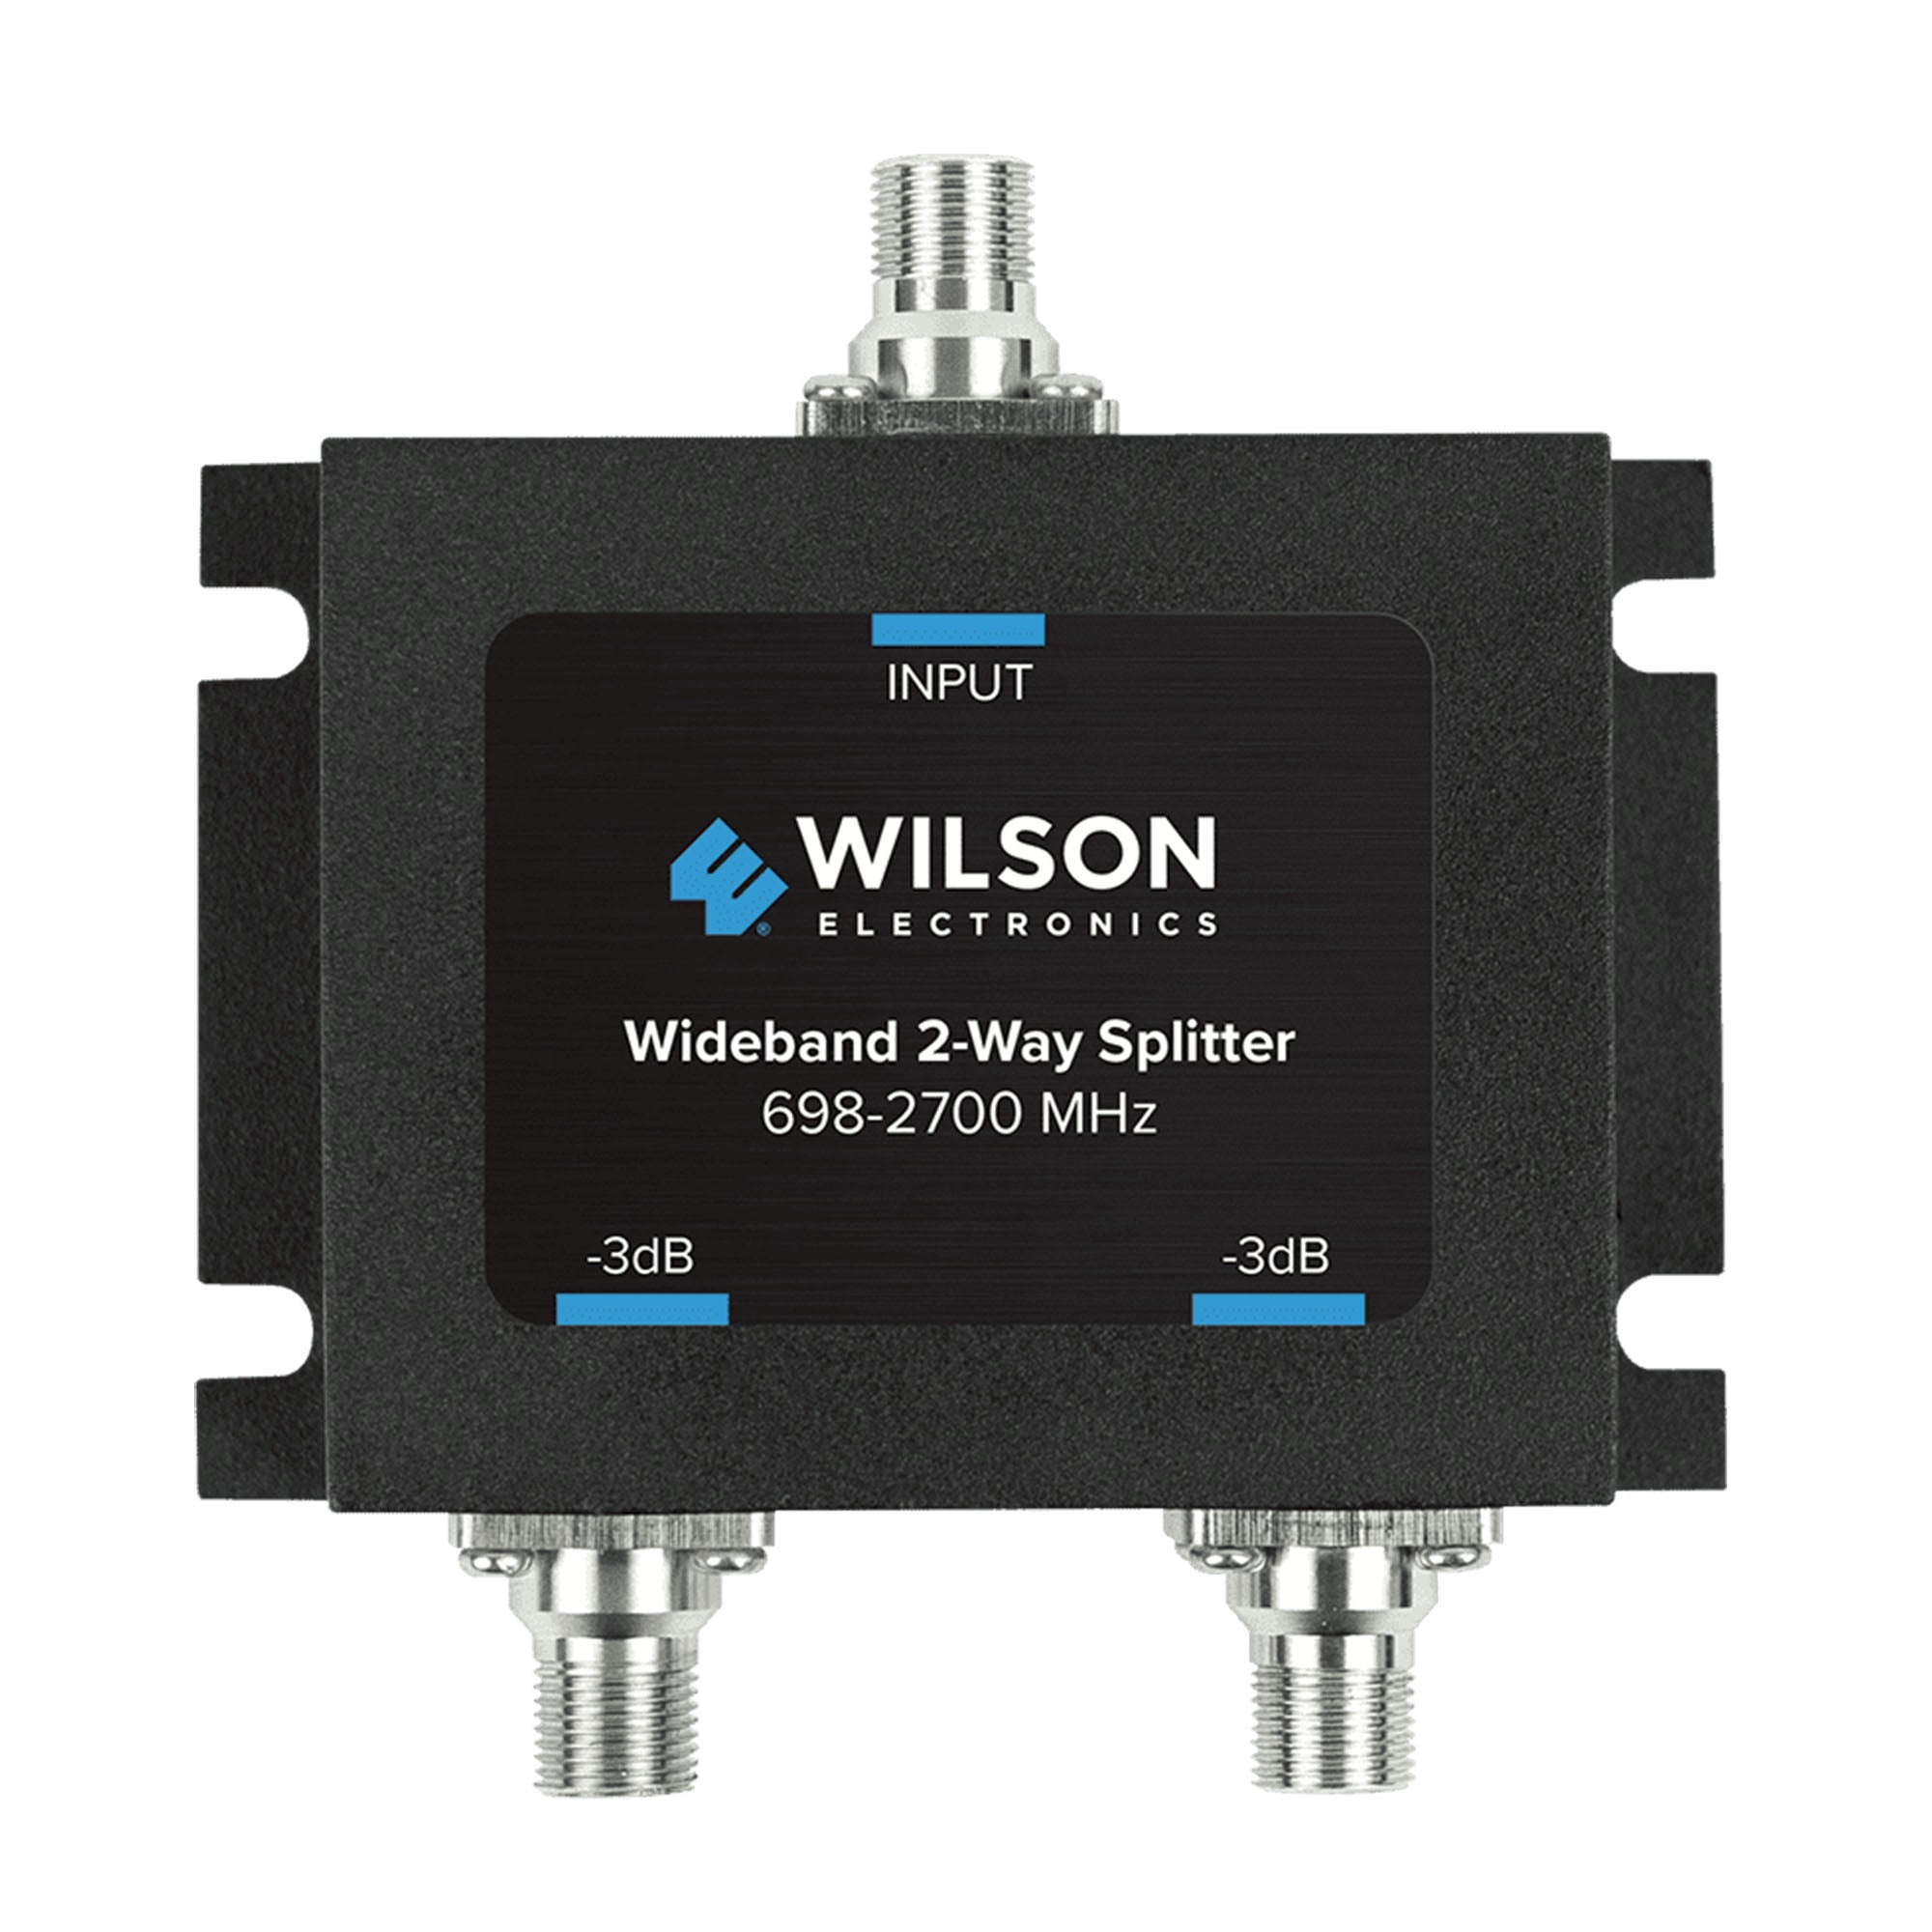 Wilson 2 Way splitter for 698-2700 MHz w/ F female connectors - 850034